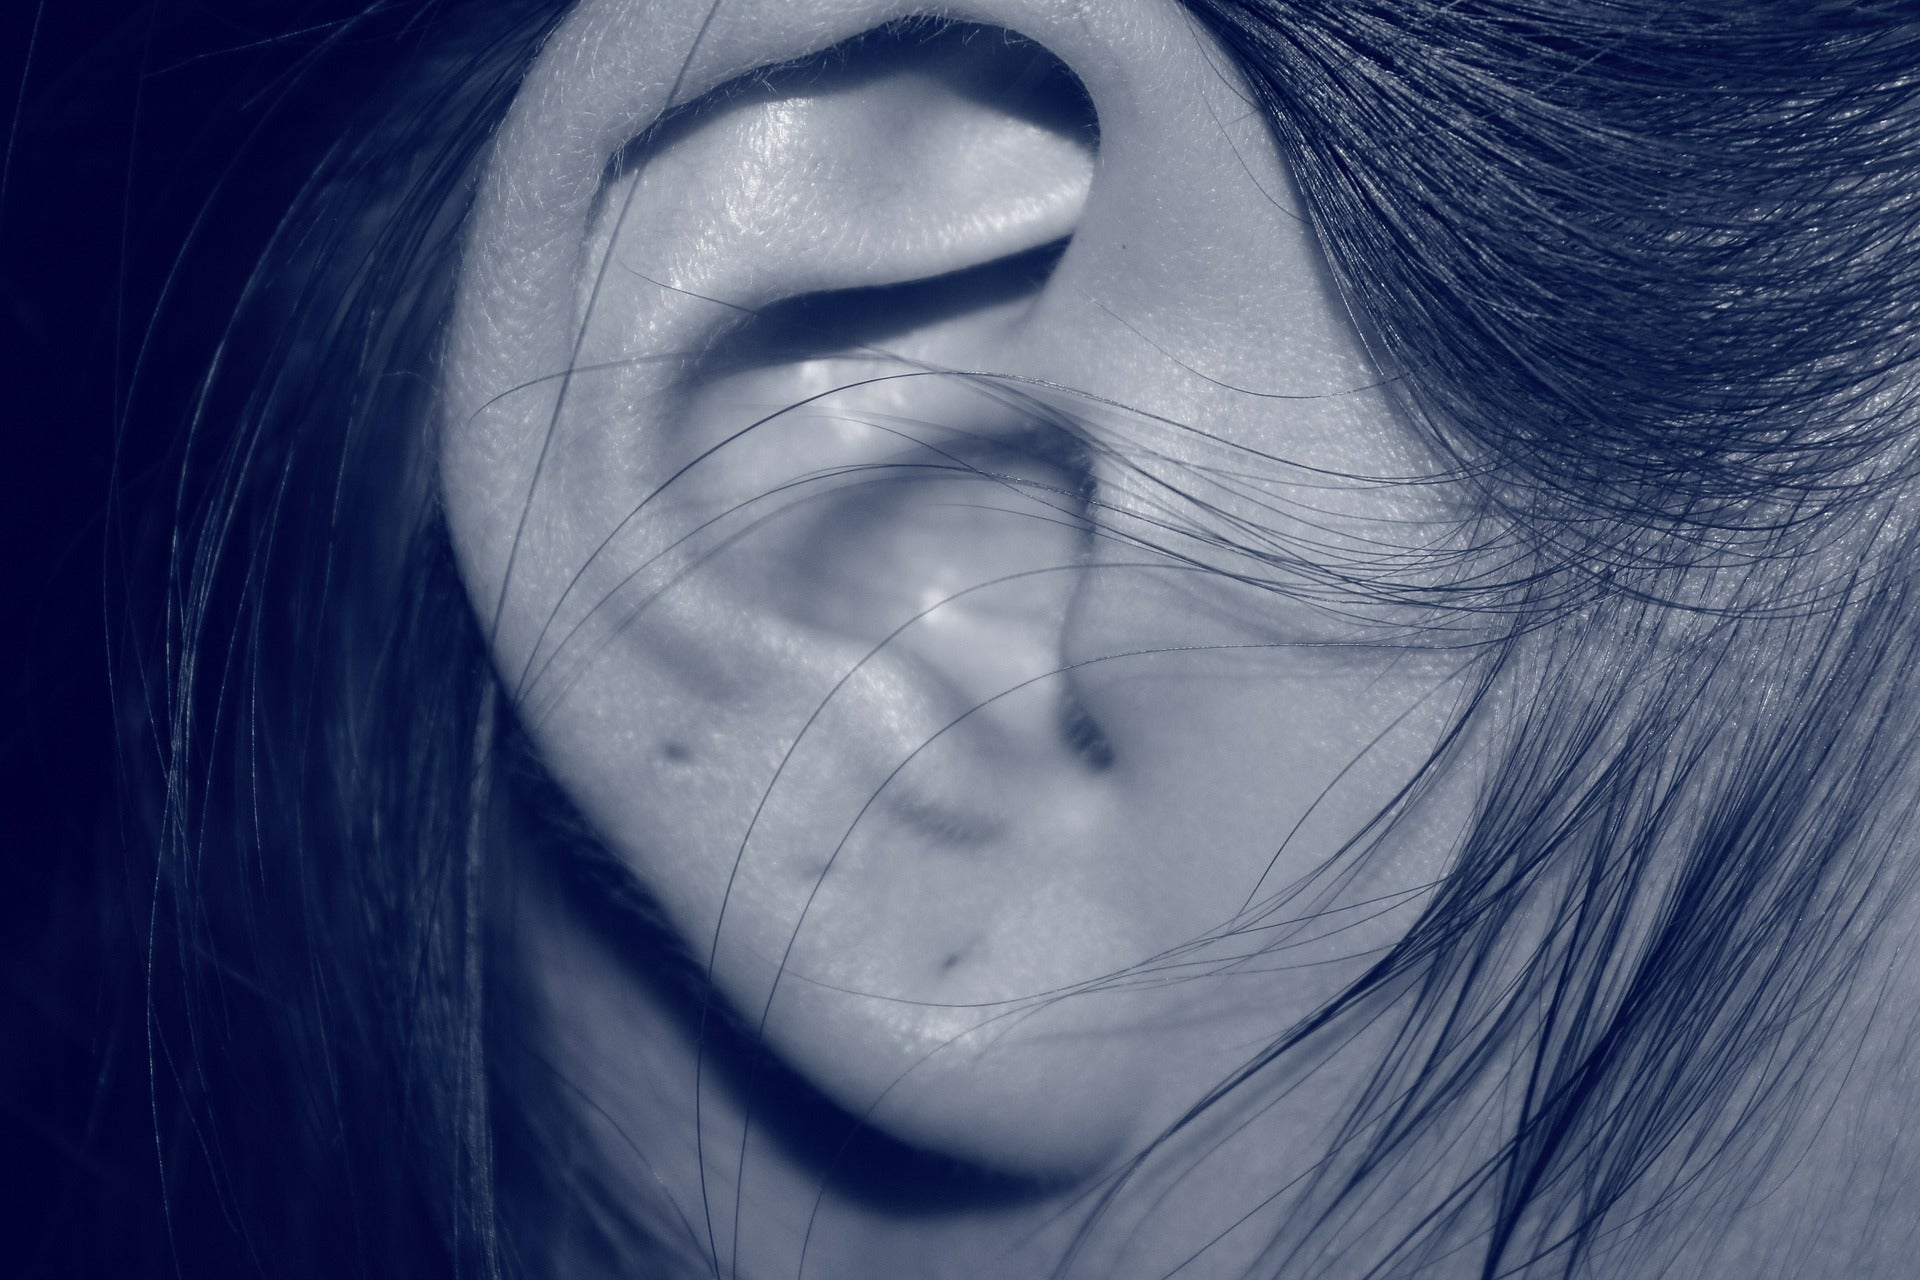 Everything Ear Care: What You Need to Know About Closed Piercings